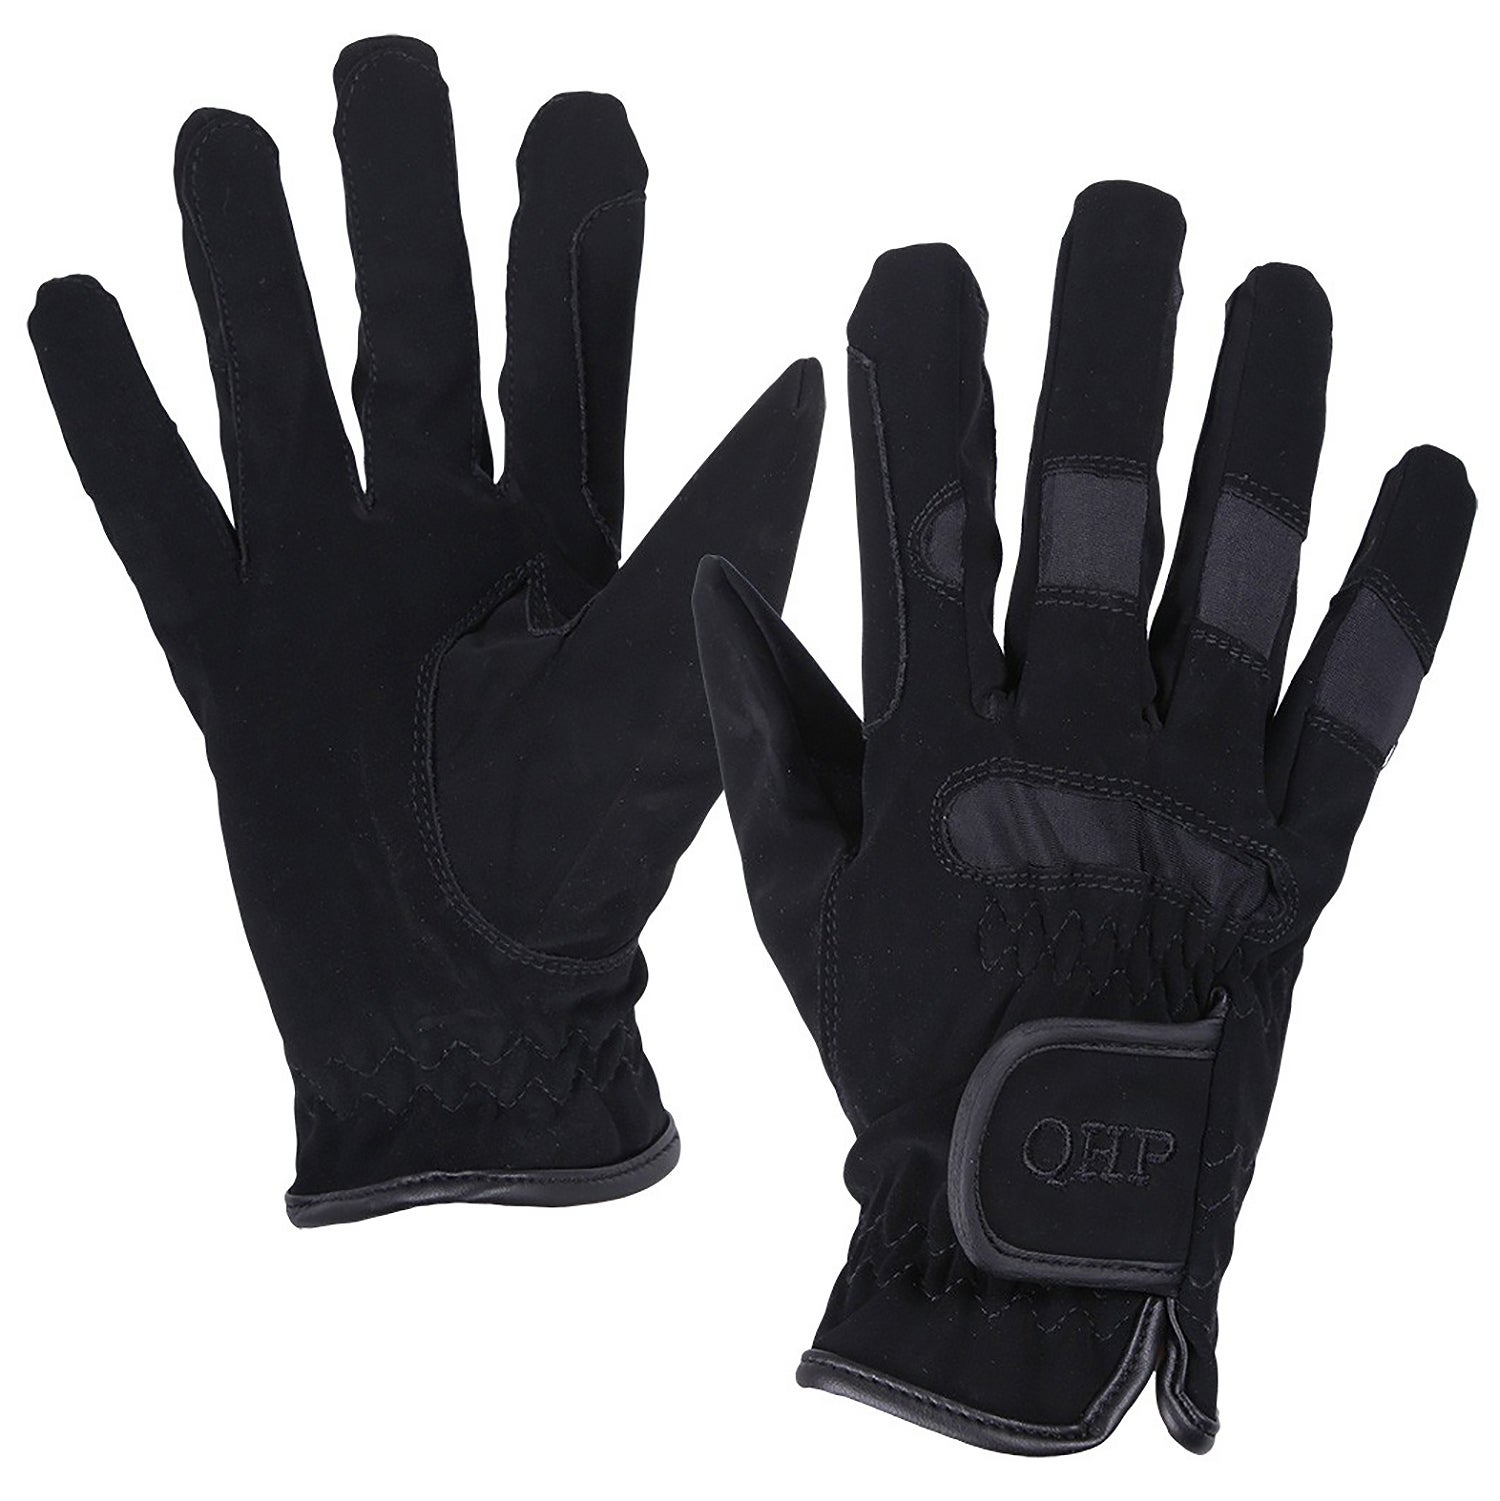 QHP Multi Winter Riding Gloves